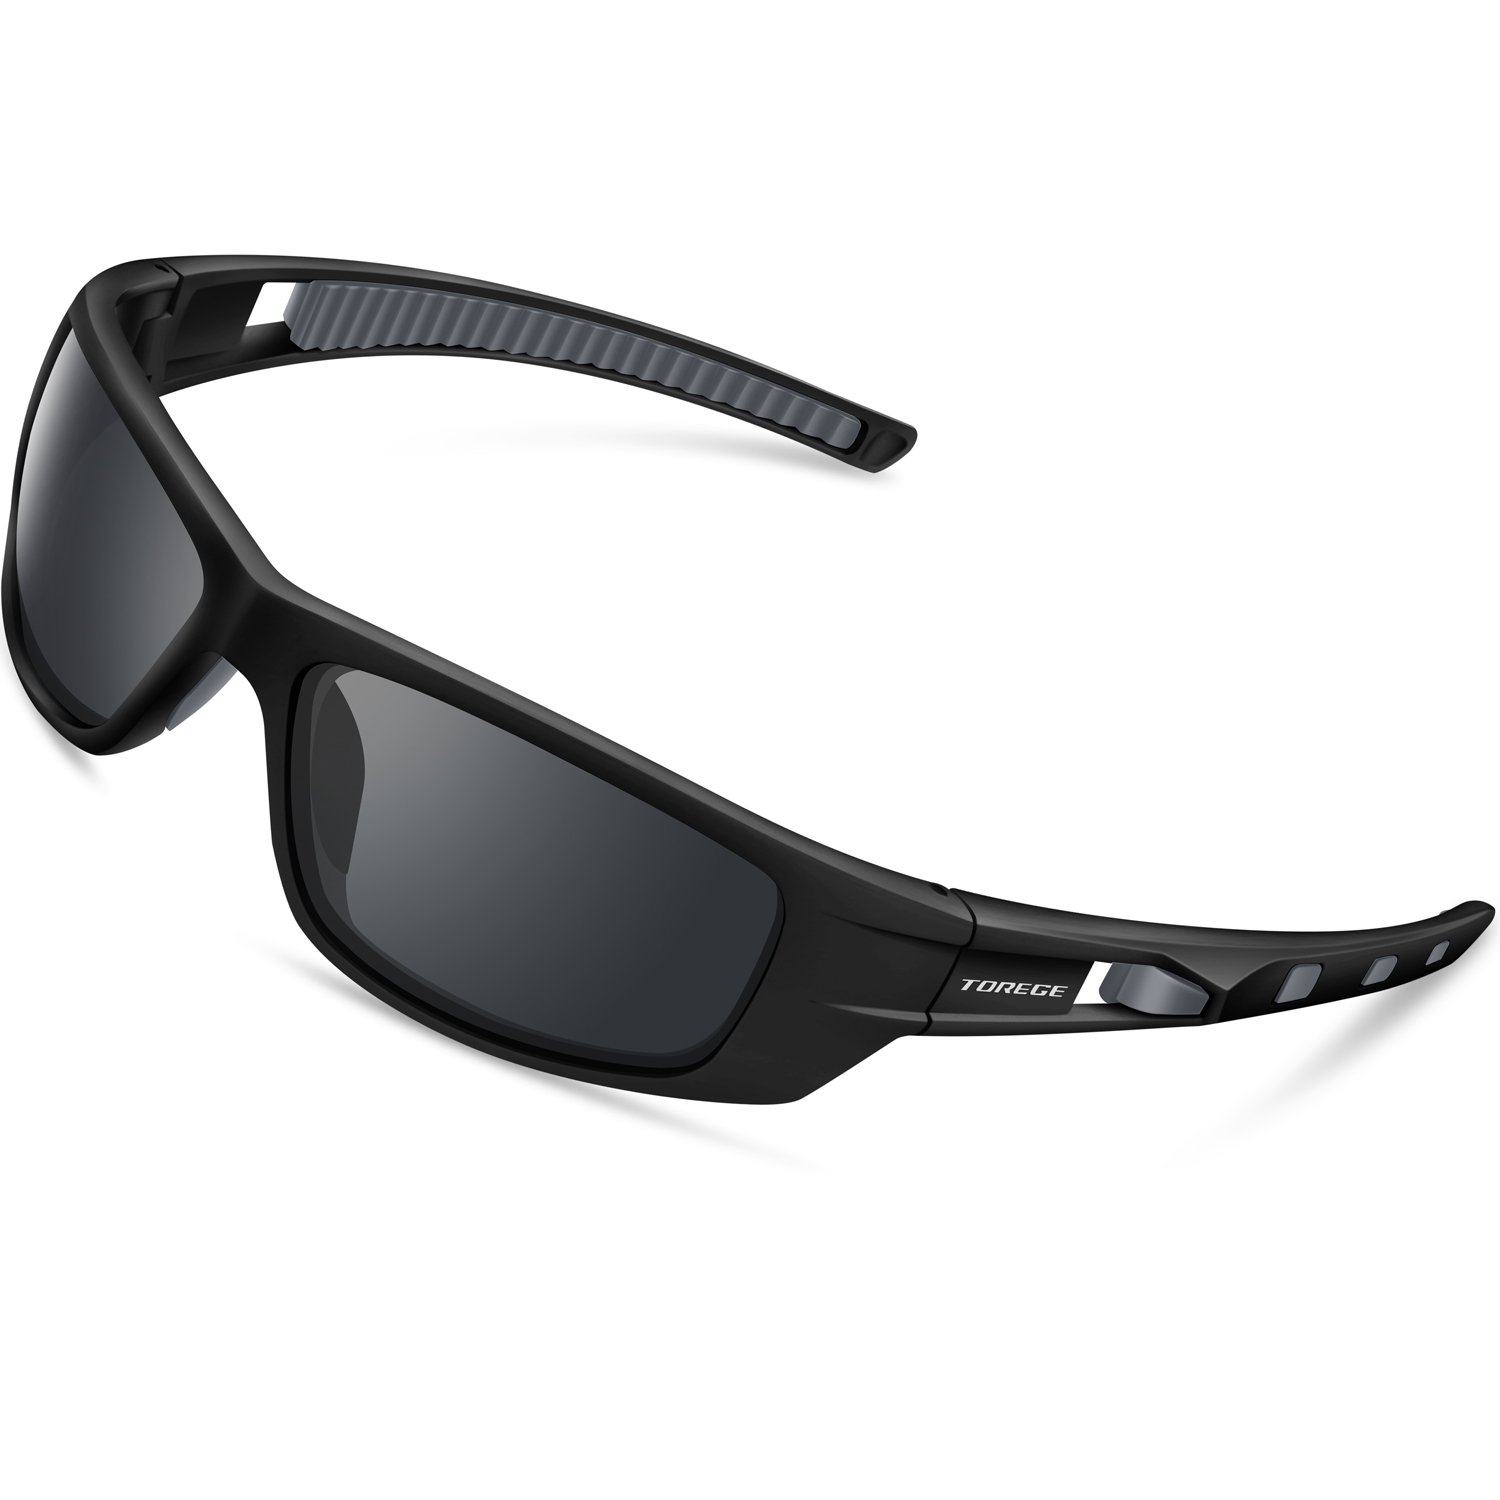 eb62f1e9d7a TOREGE Sports Sunglasses Polarized Glasses For Man Women Cycling Running  Fishing Golf TR040 product image